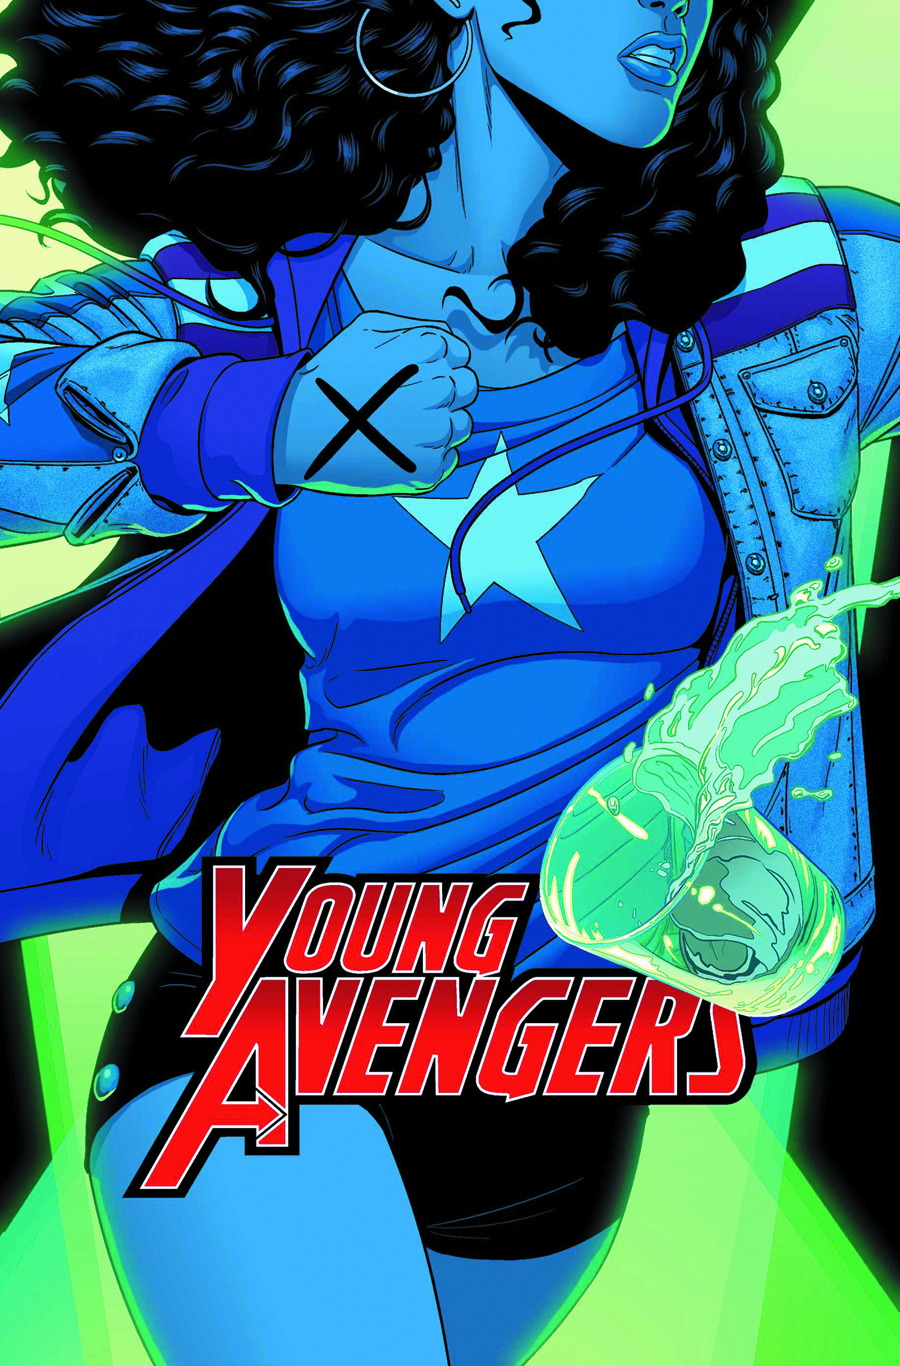 YOUNG AVENGERS #3 NOW